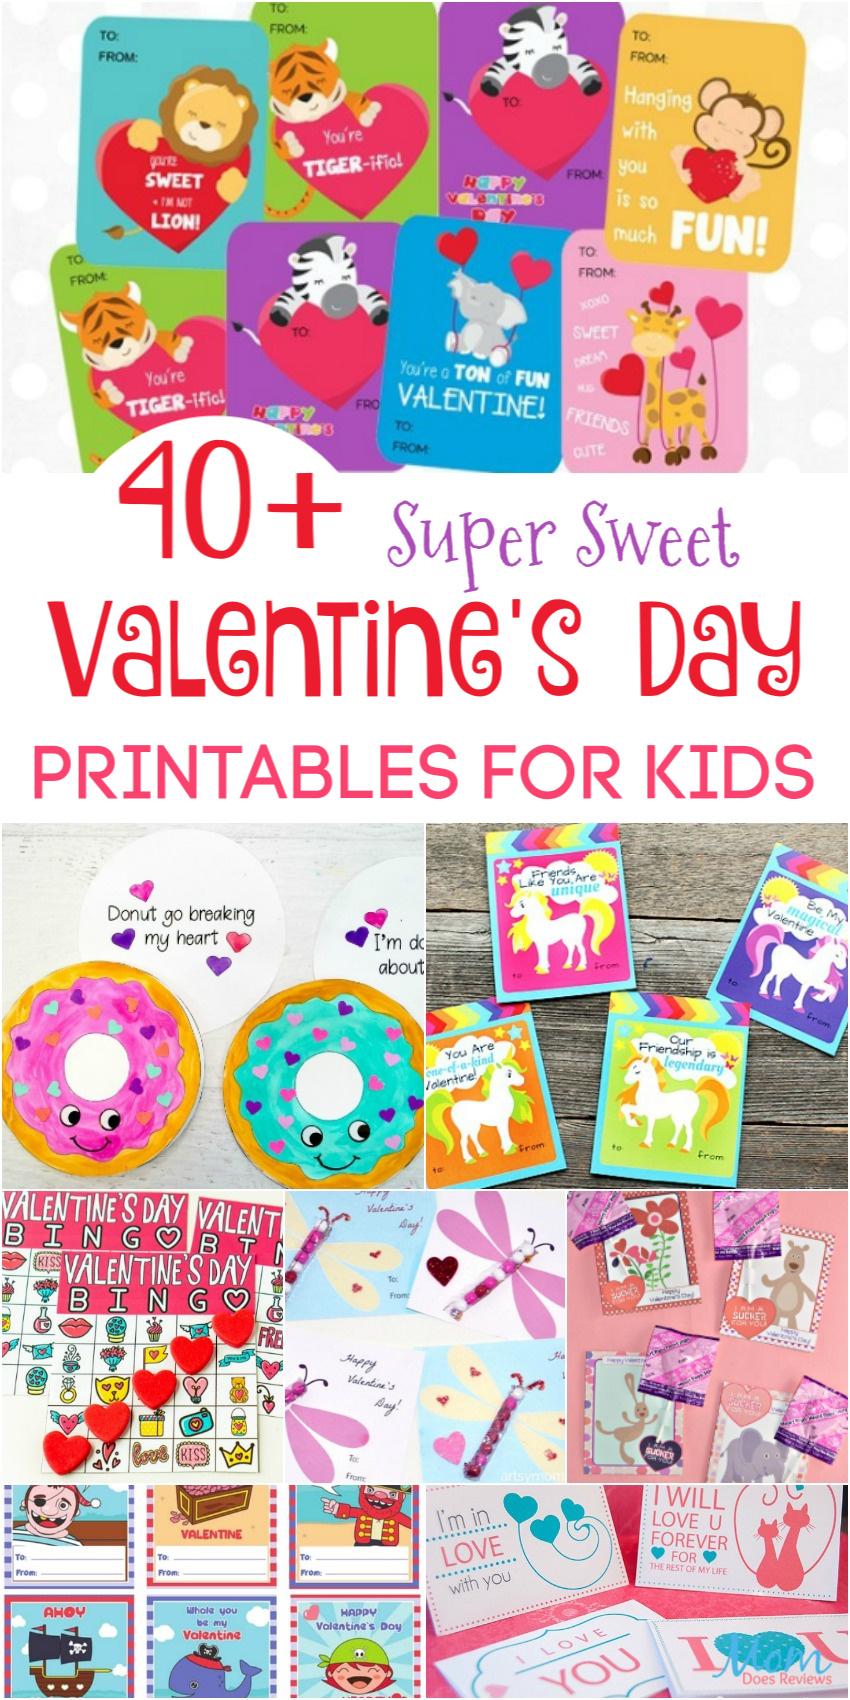 40+ Super Sweet Valentine's Day Printables for Kids #sweet2020 #valentinesday #freeprintables